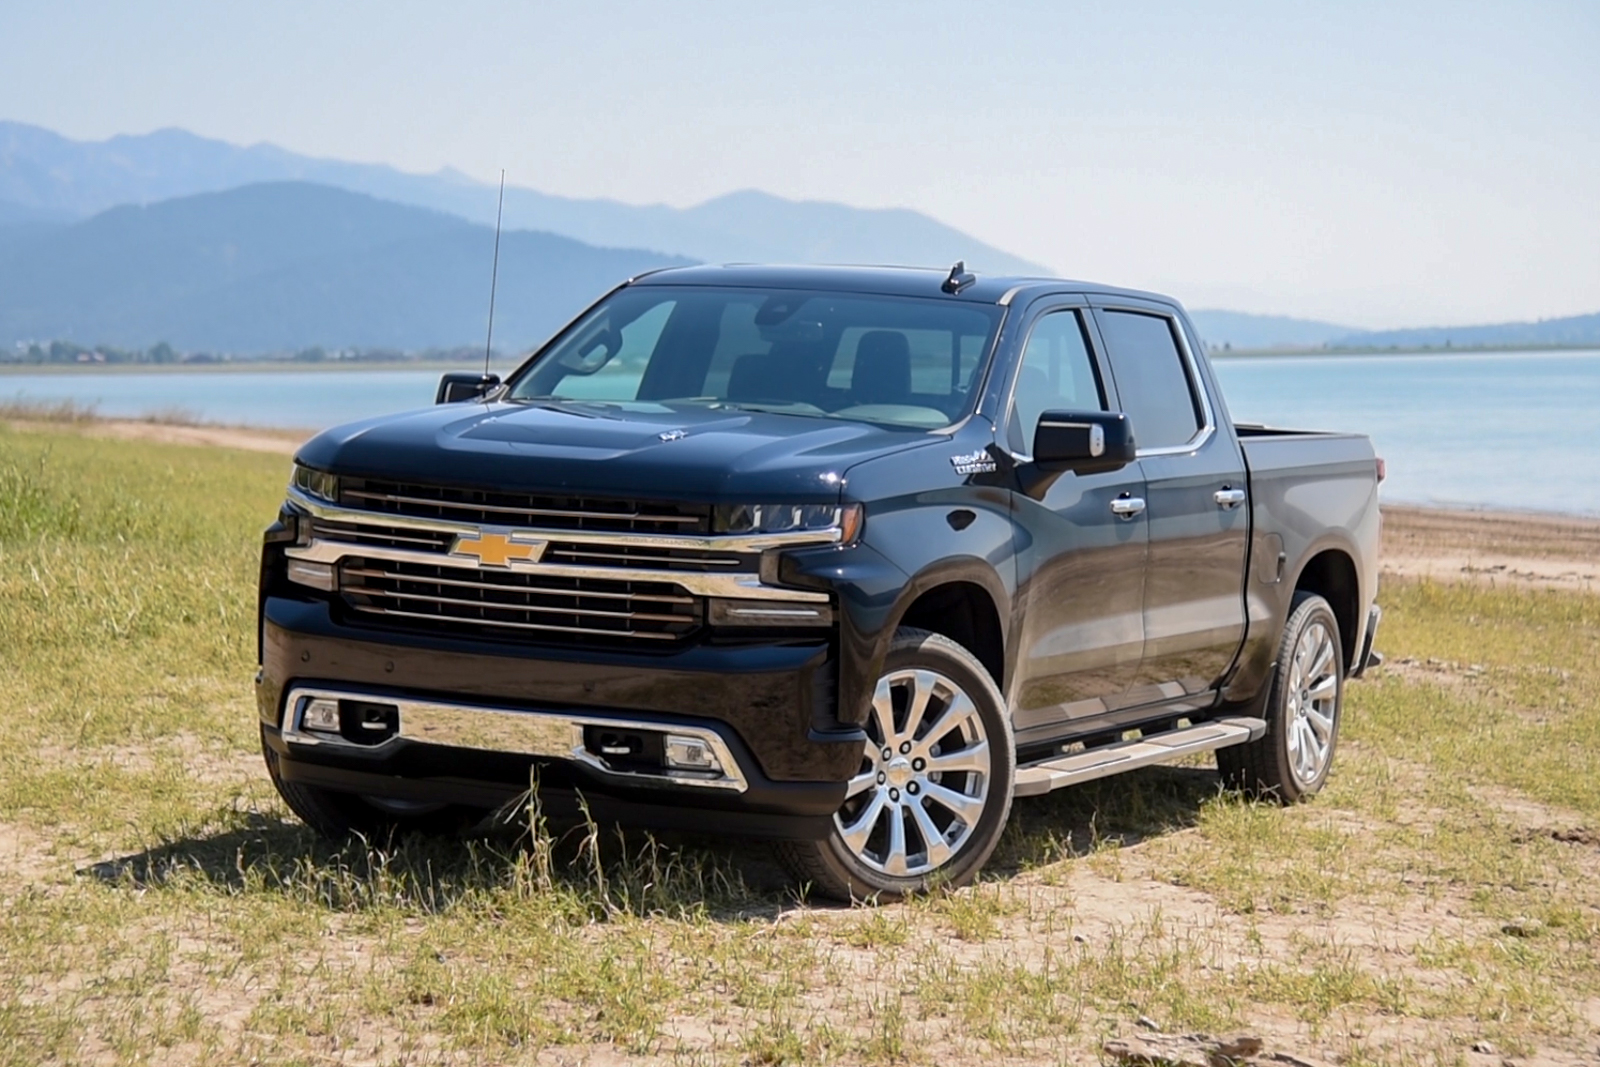 What Makes the 2019 Chevrolet Silverado Drive so Well